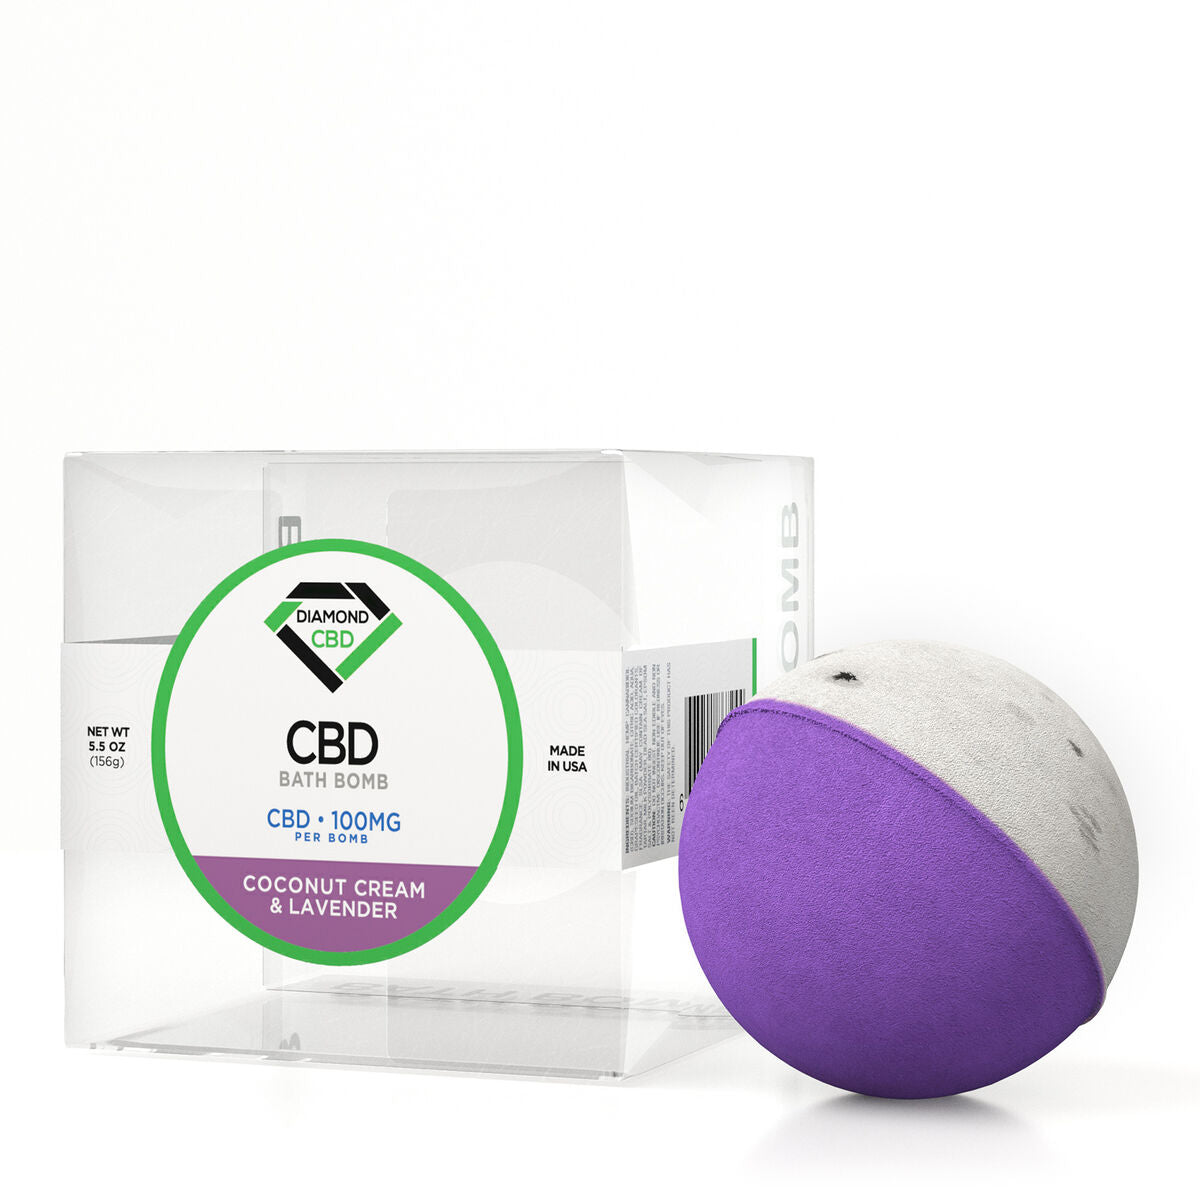 Diamond CBD Bath Bomb Coconut Cream & Lavender - 100mg